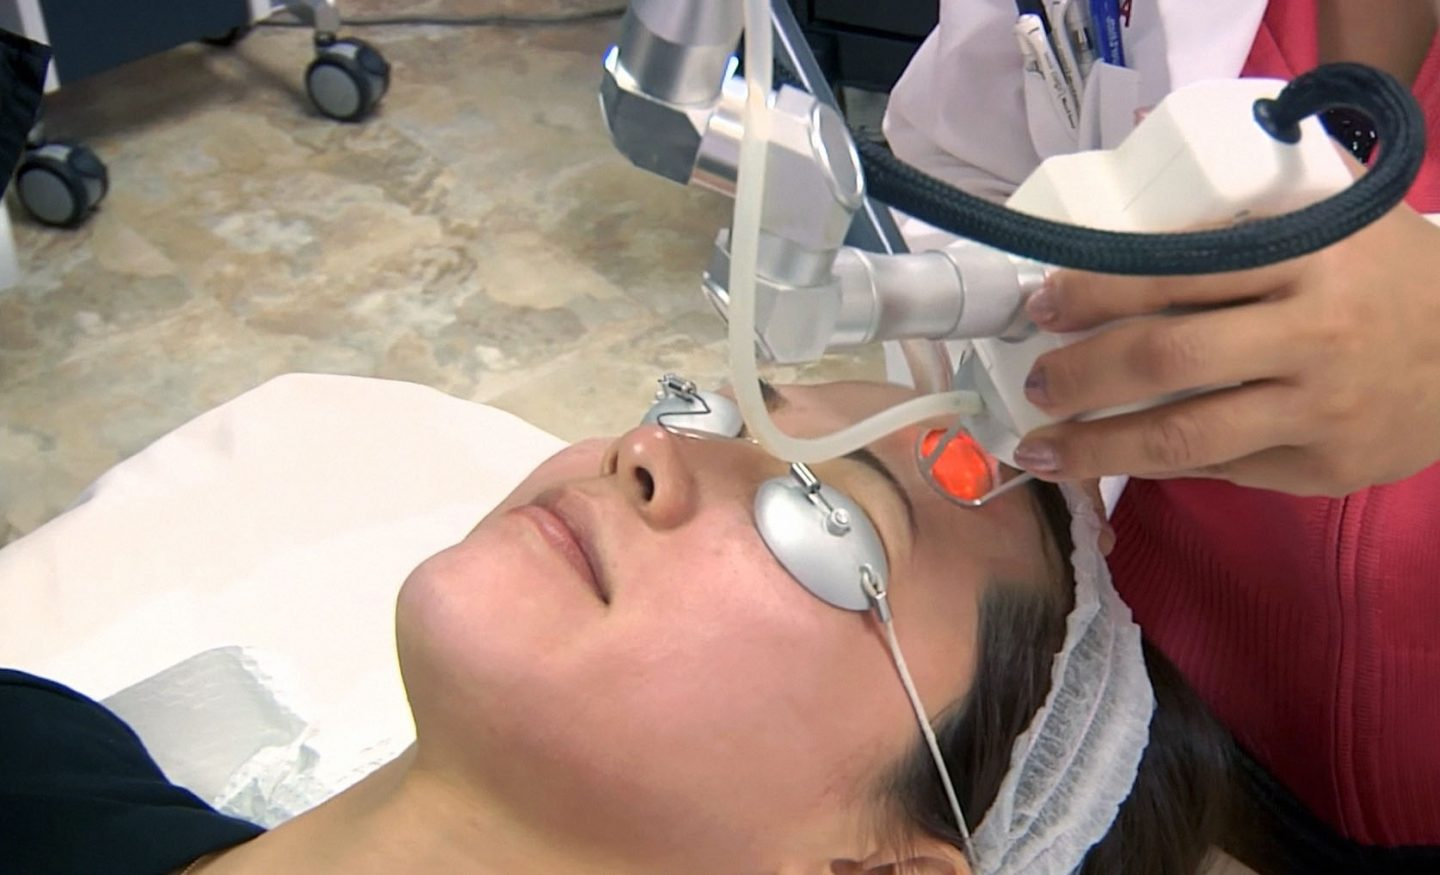 Woman undergoing Fractional Co2 Laser treatment